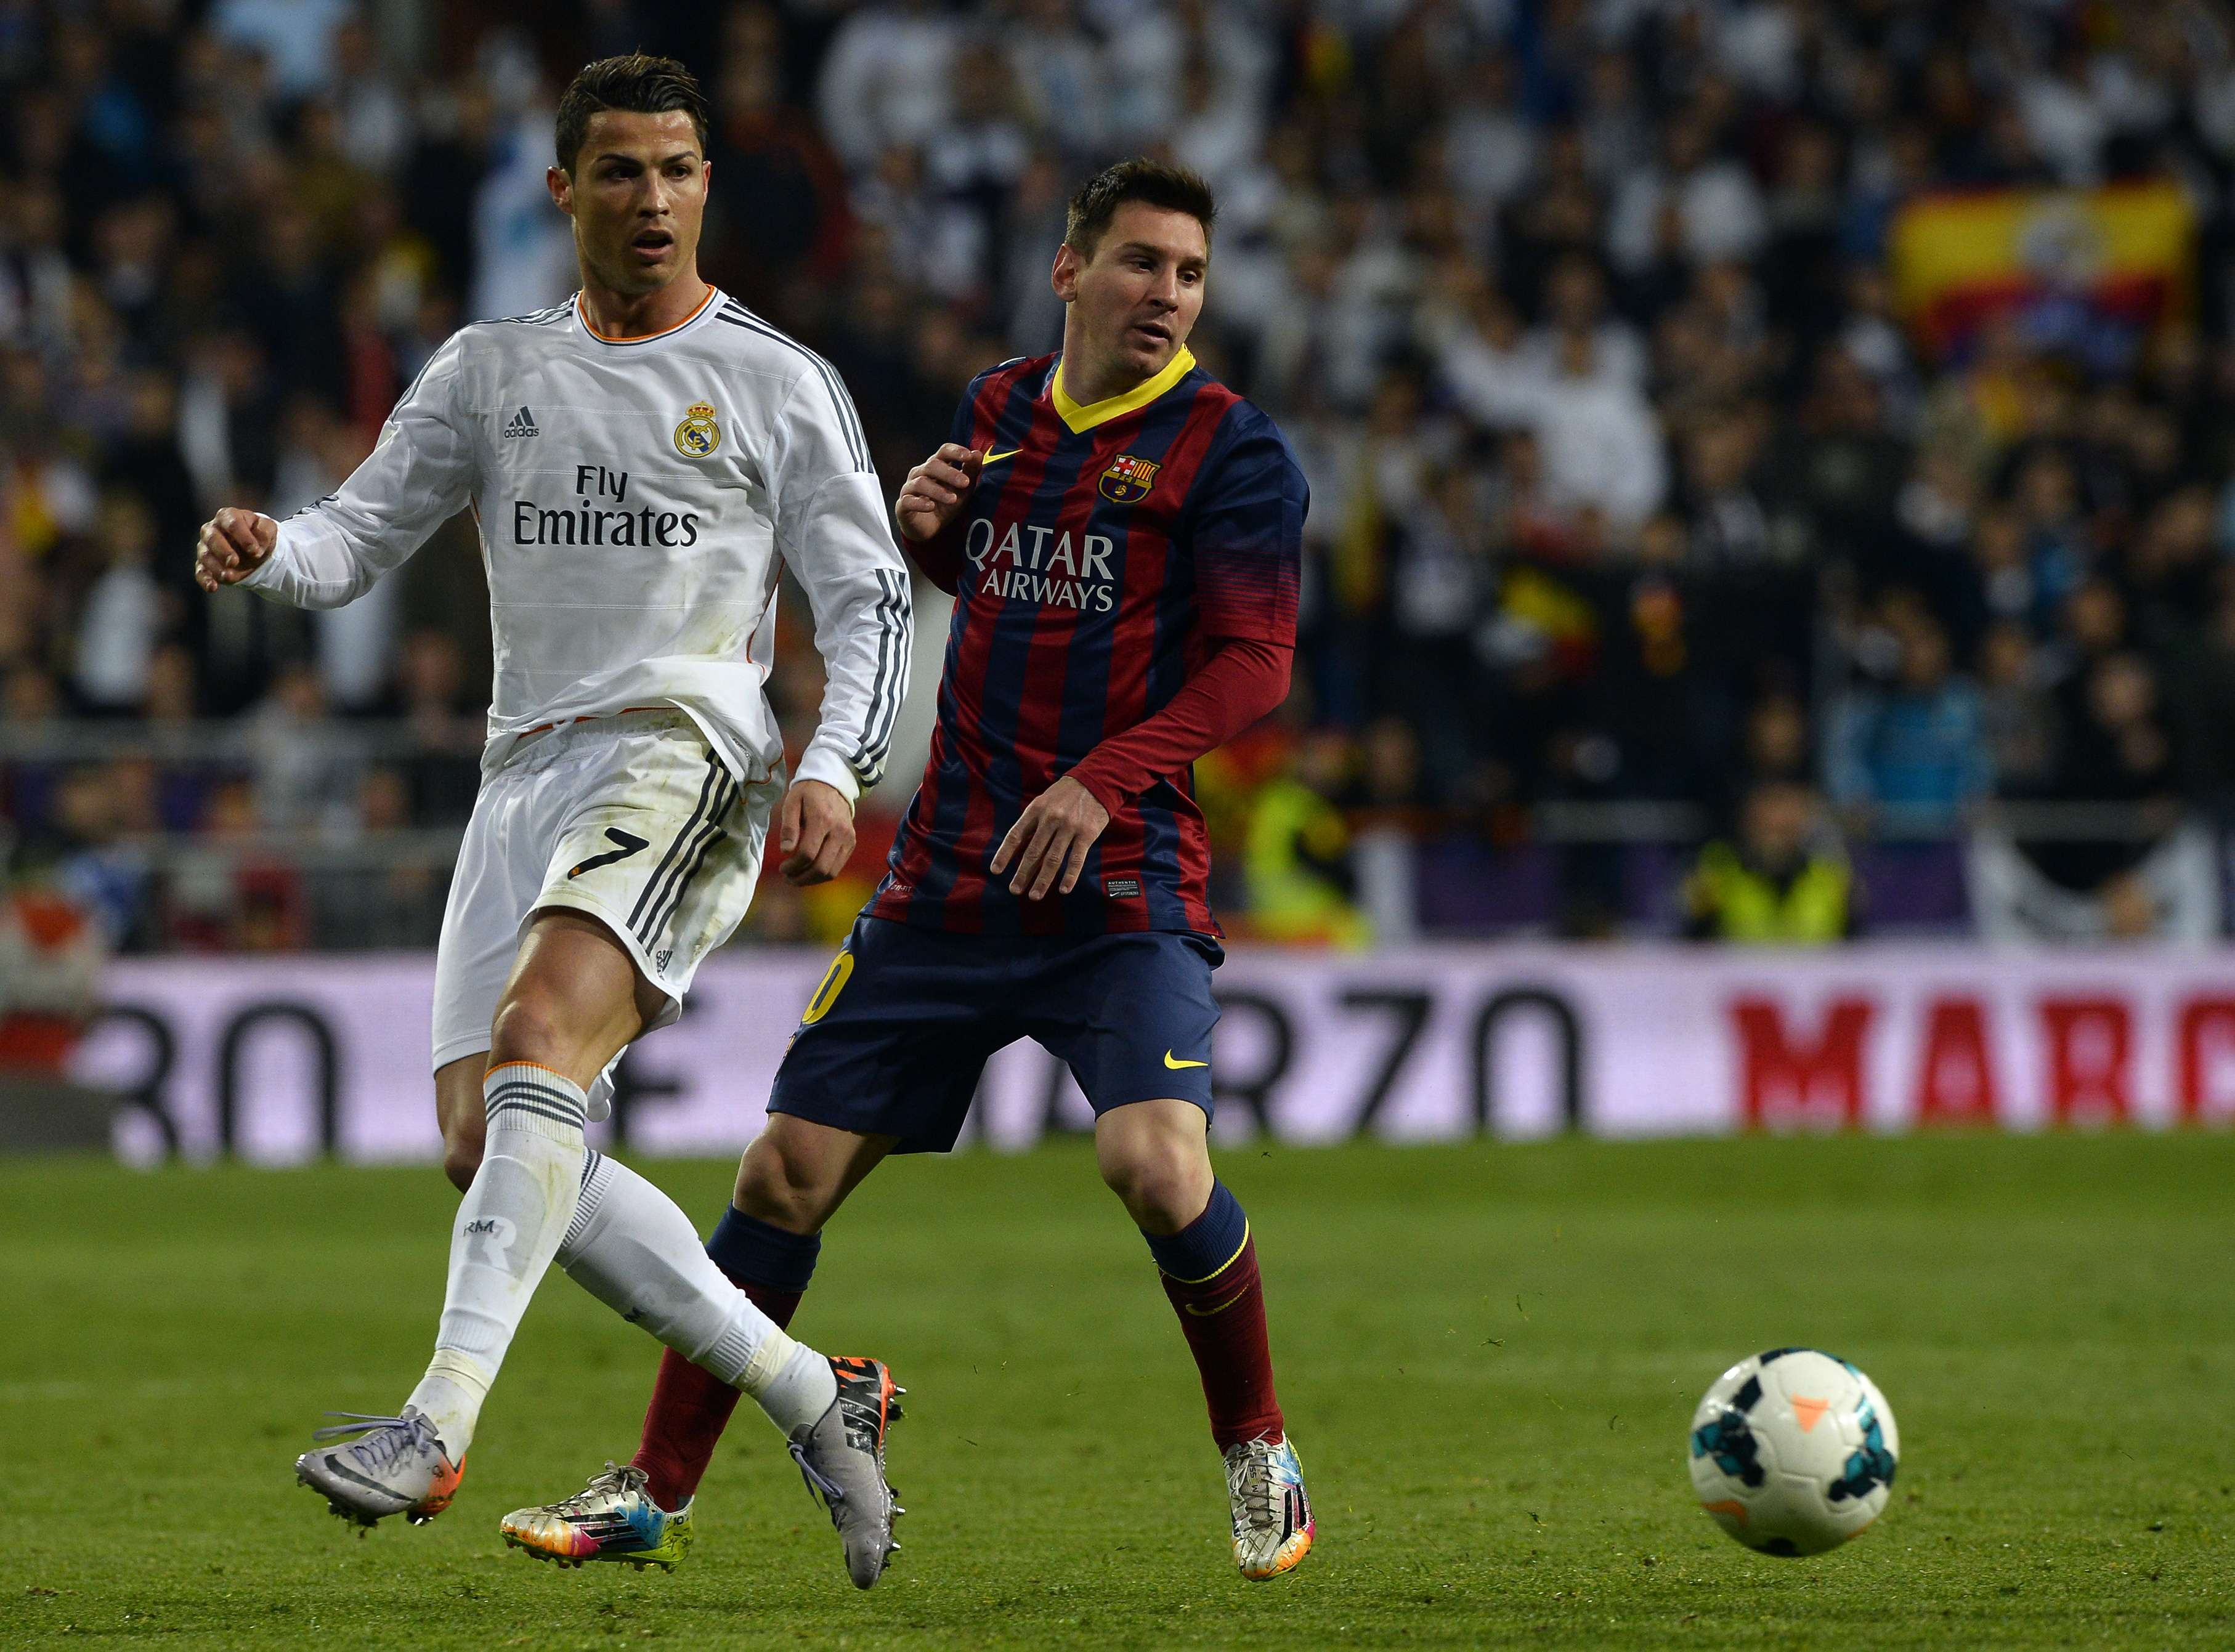 Cristiano Ronaldo y Messi. Foto: Getty Images